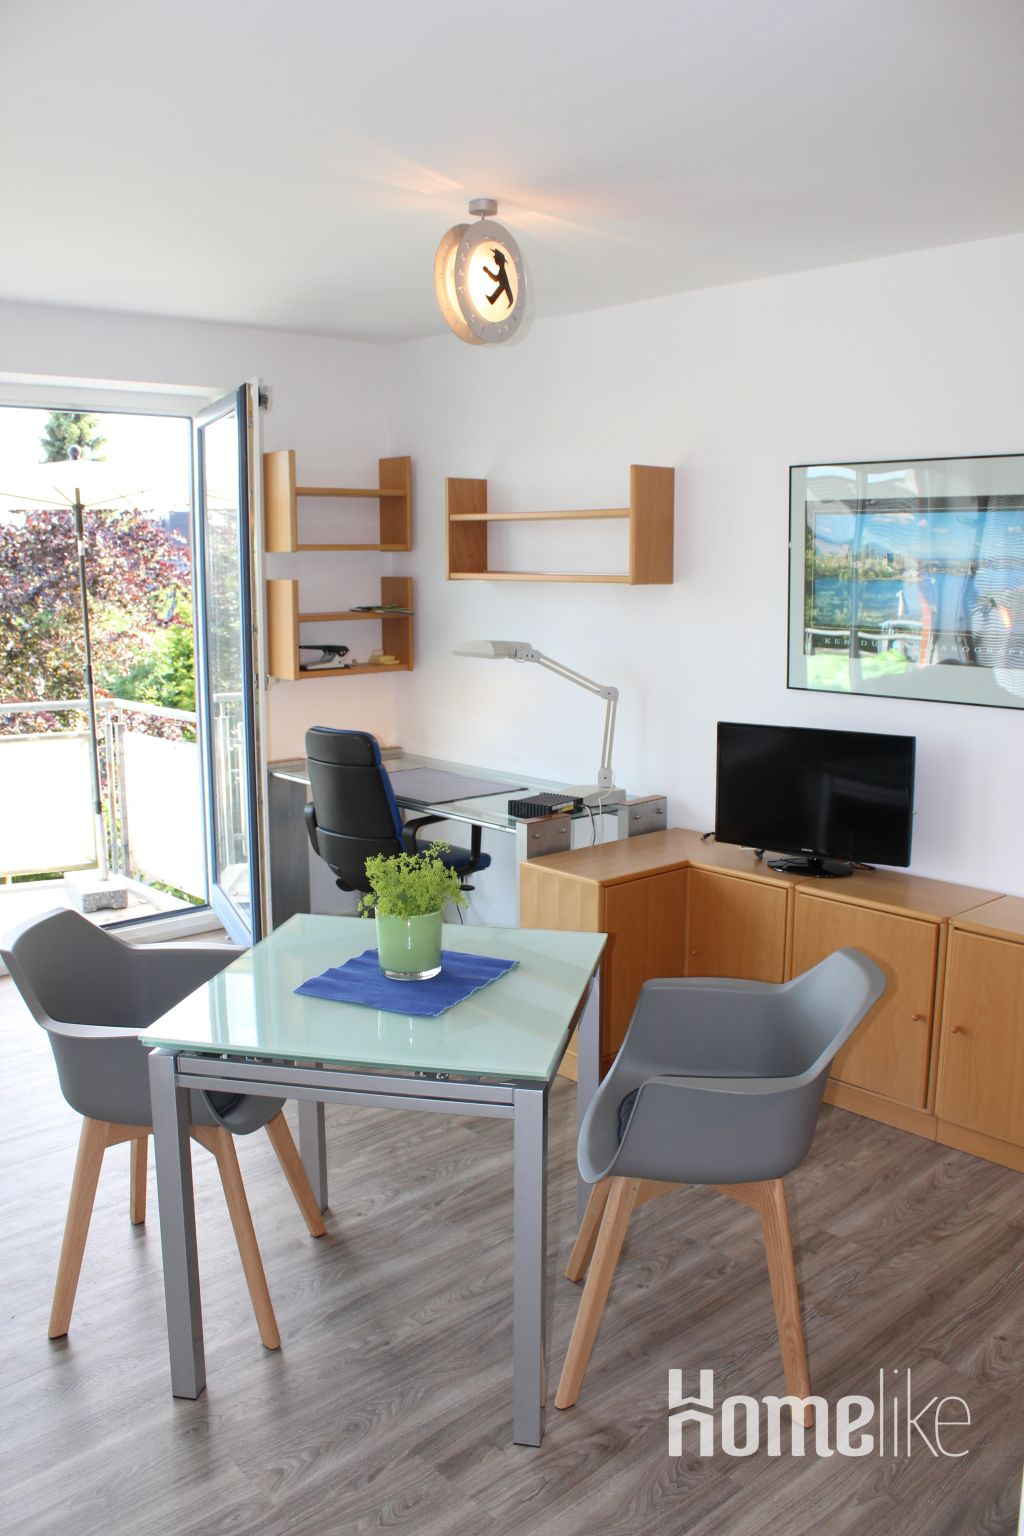 image 2 furnished 1 bedroom Apartment for rent in Seevetal, Harburg Lower Saxony